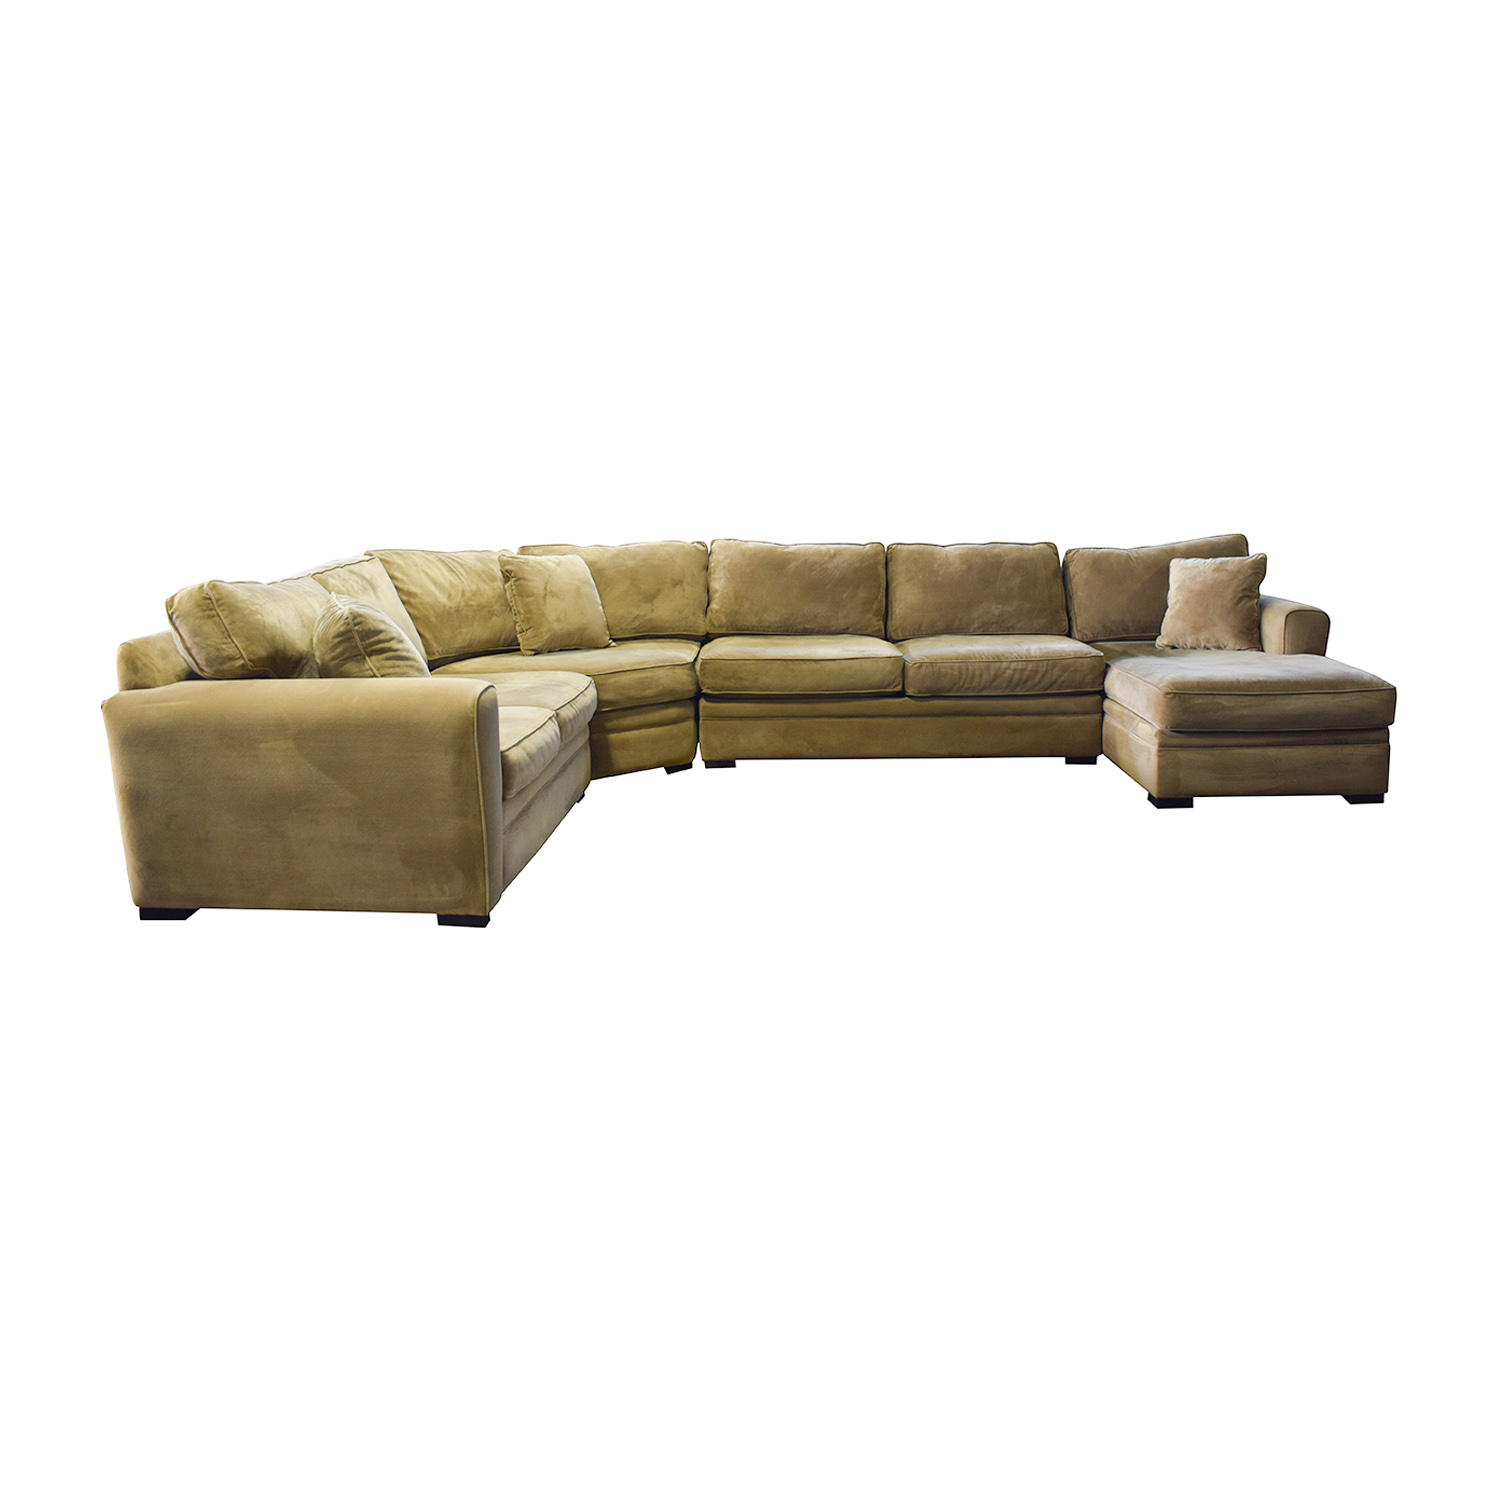 Raymour & Flanigan Raymour & Flanigan L-Shaped Sectional Sectionals